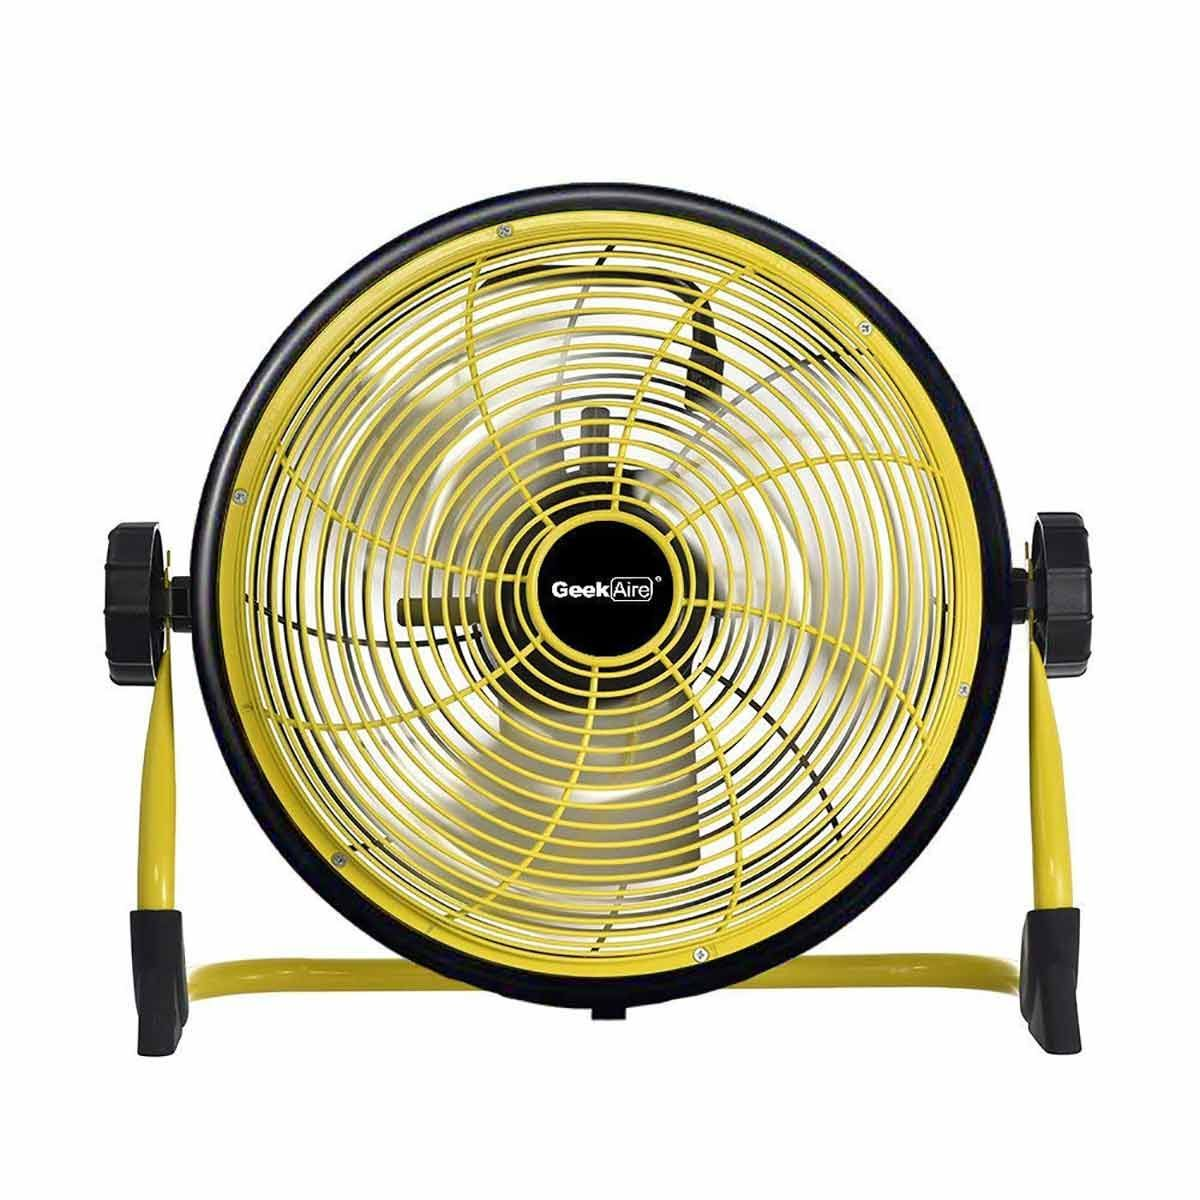 Geek Aire Rechargeable Table Fan - 12 Inch (Yellow)